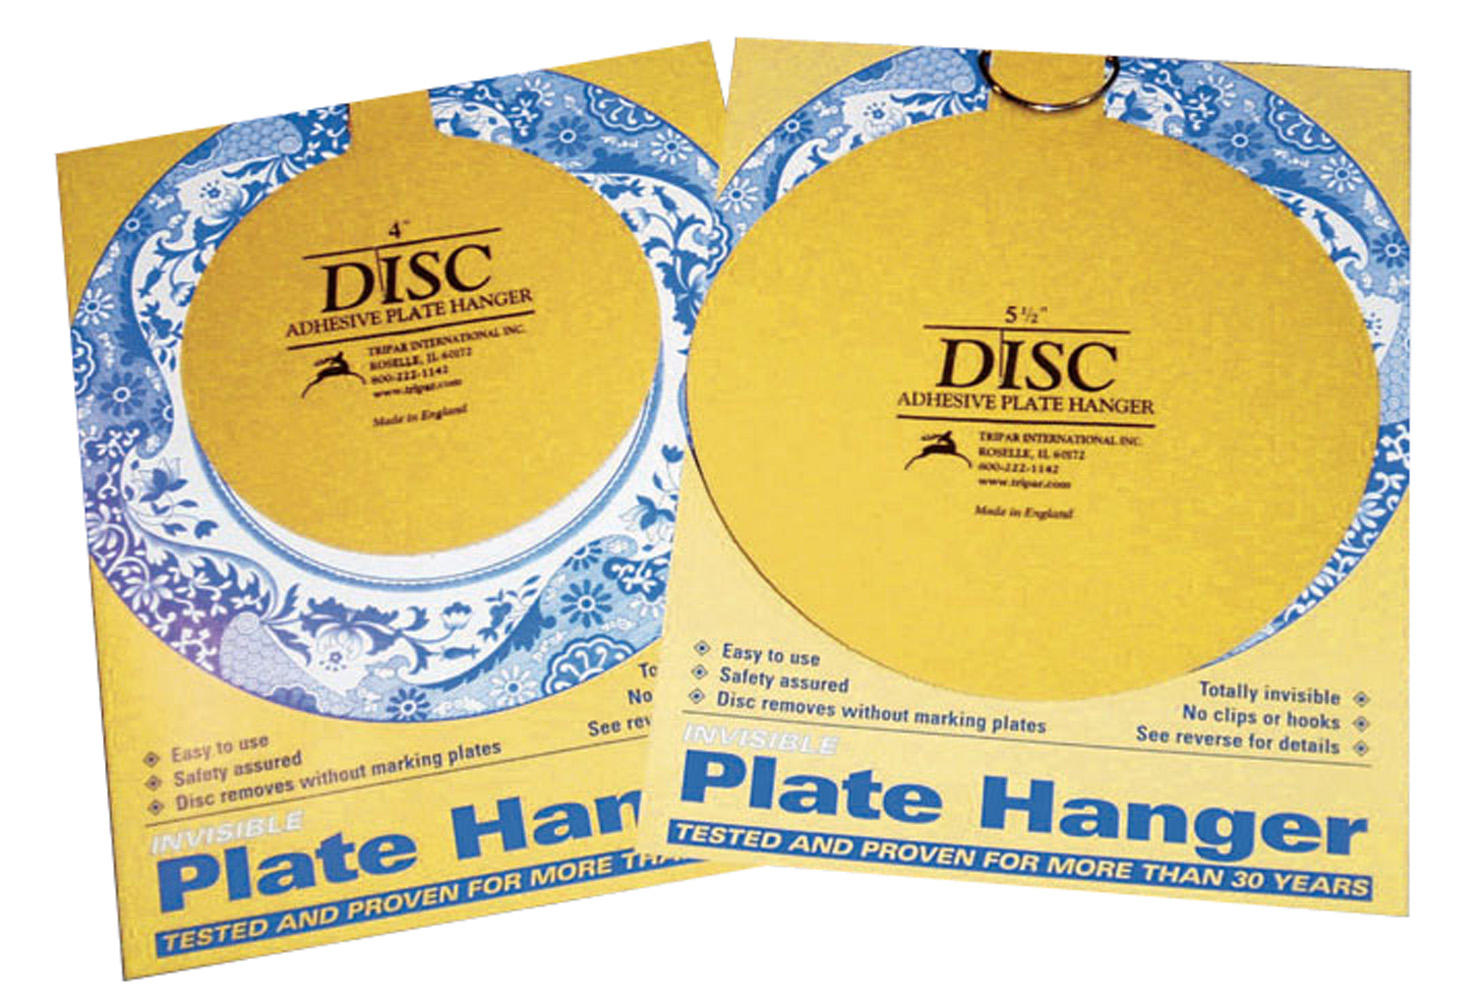 Favorite Things Friday Disc  sc 1 st  Castrophotos & Disk Adhesive Plate Hangers - Castrophotos